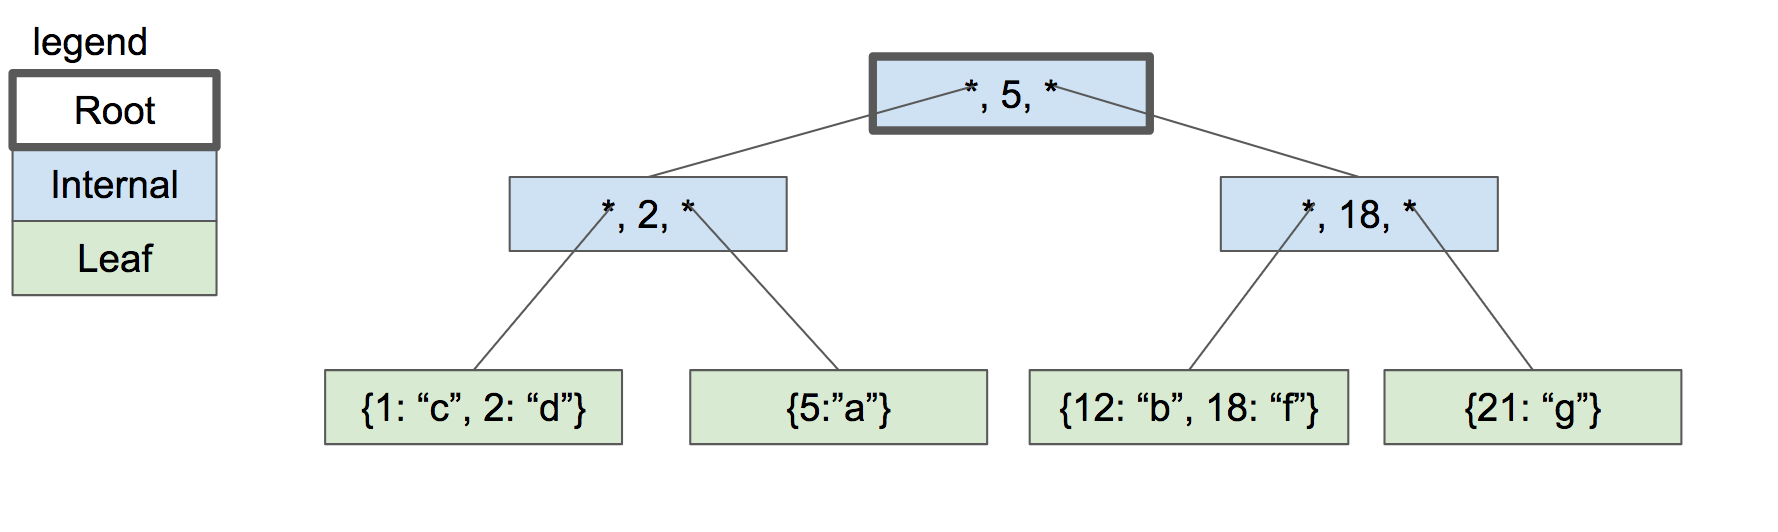 three-level btree